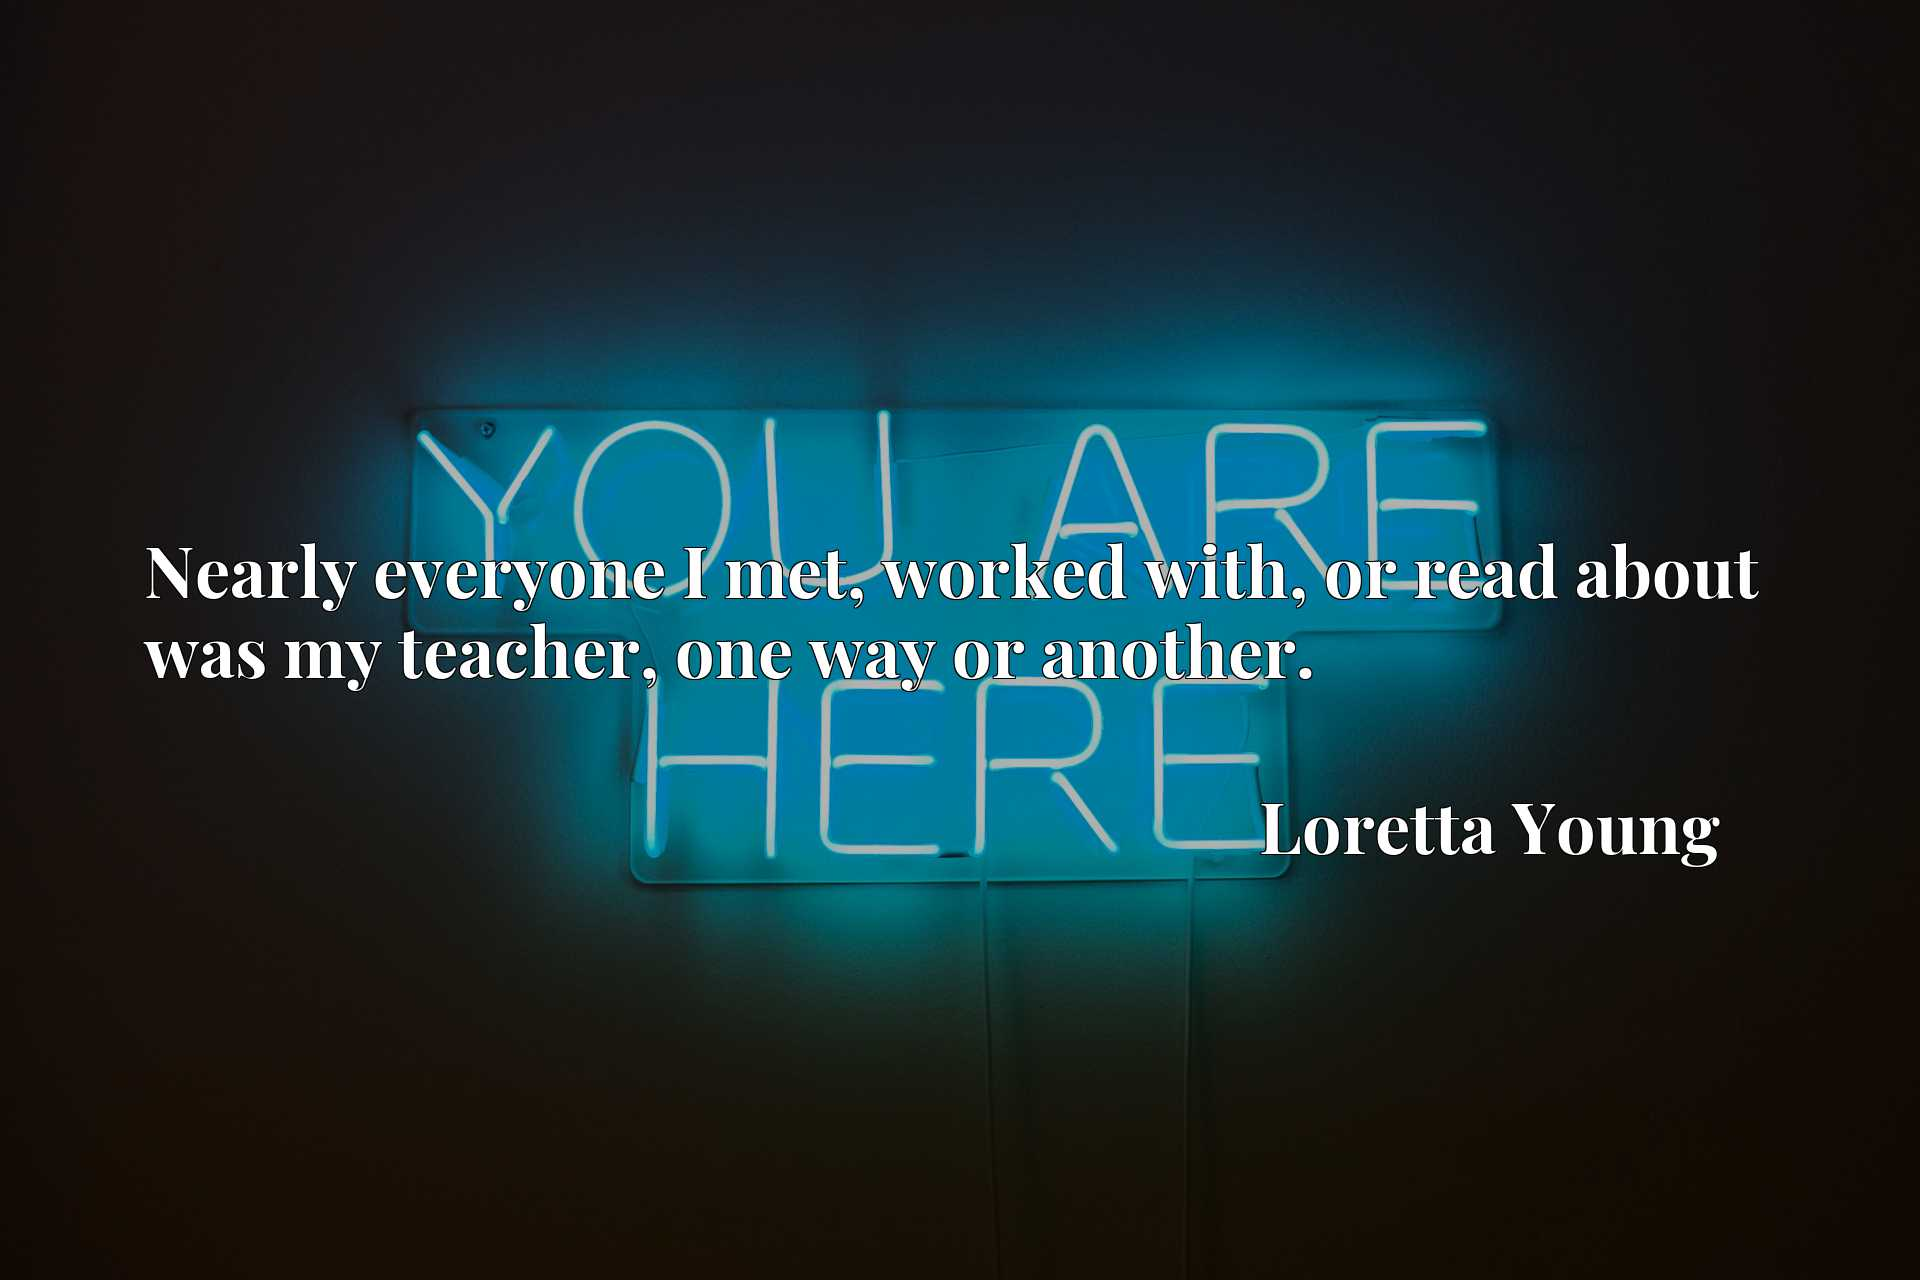 Quote Picture :Nearly everyone I met, worked with, or read about was my teacher, one way or another.